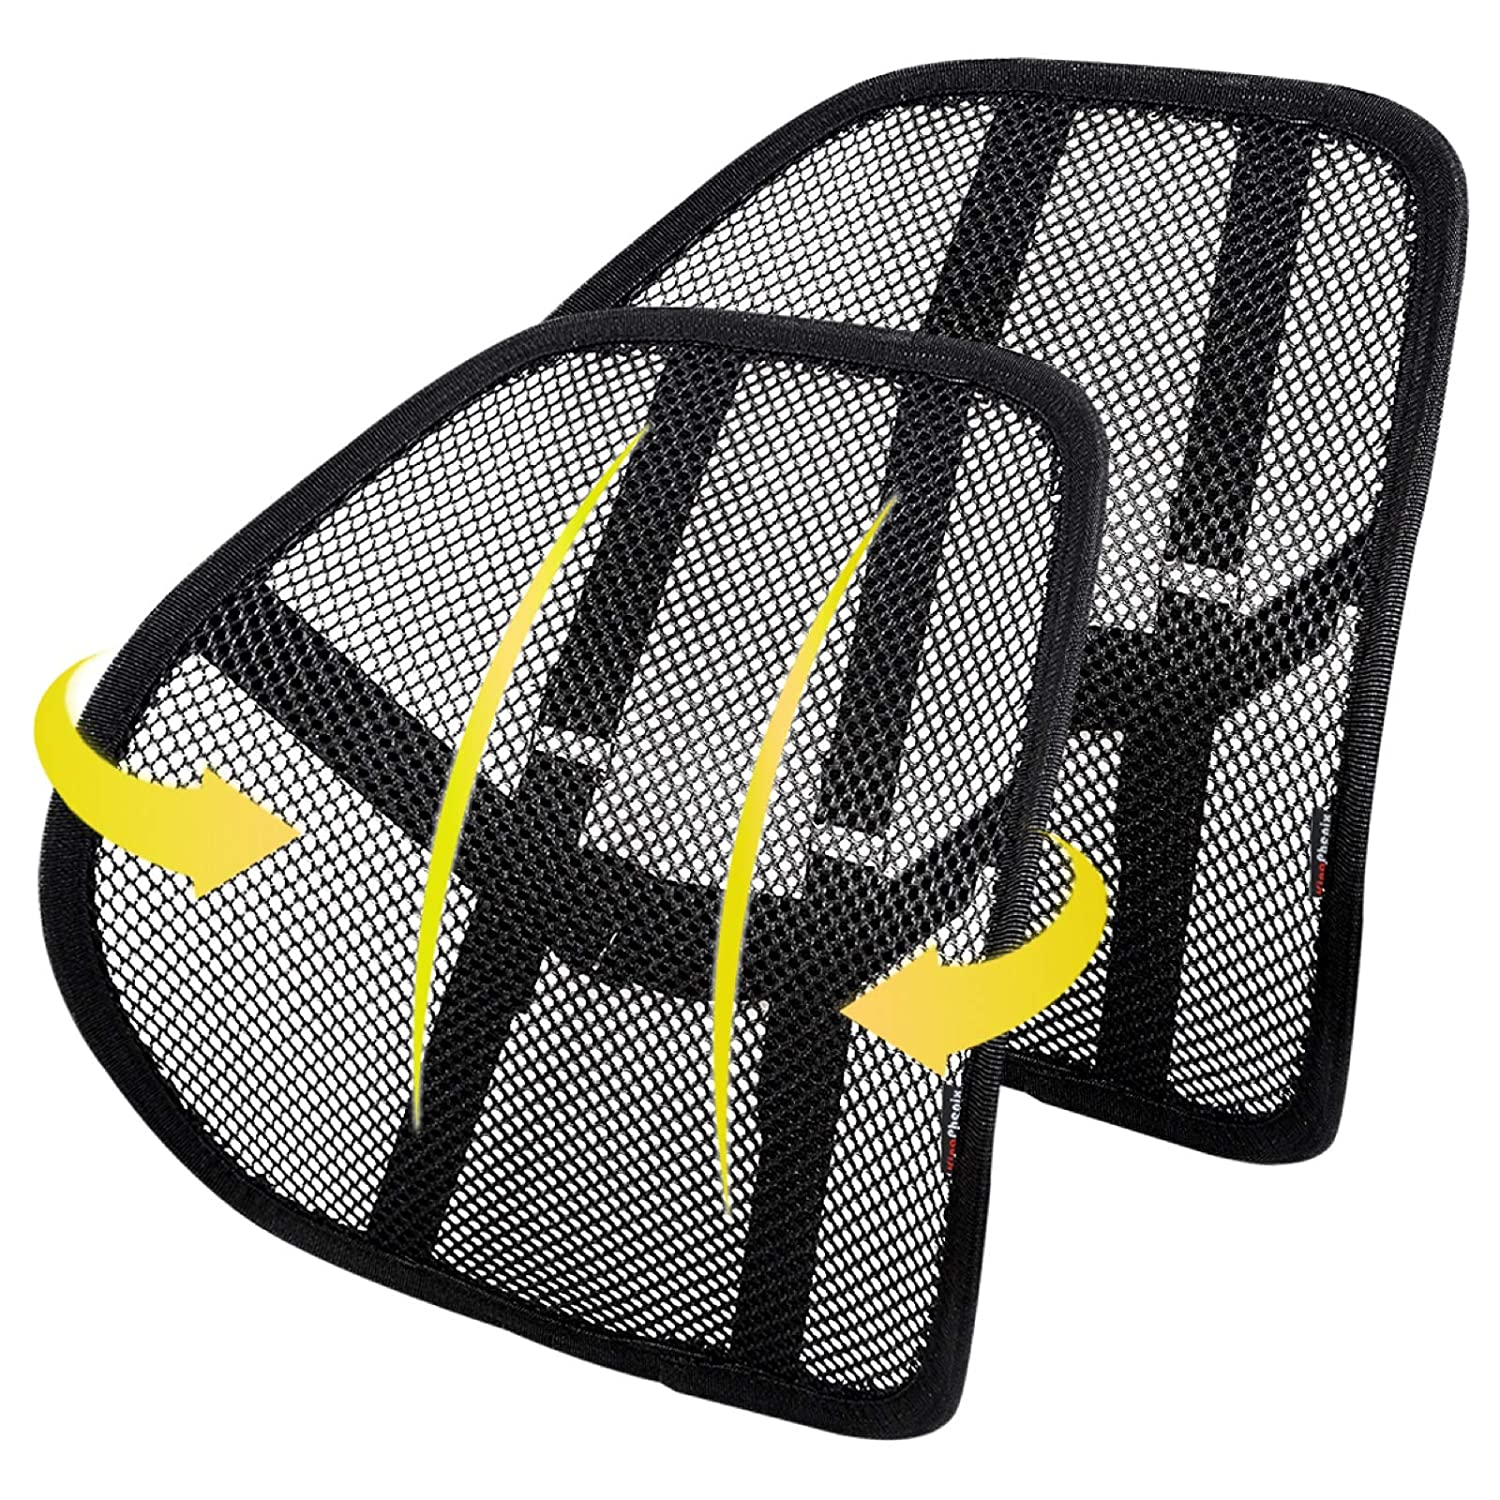 """SAMYOUNG Mesh Back Support Adjustable Mesh Lumbar Support Seat Cushion with Breathable Mesh Construction for Office Chairs Car Seats 12/"""" x 16/"""""""